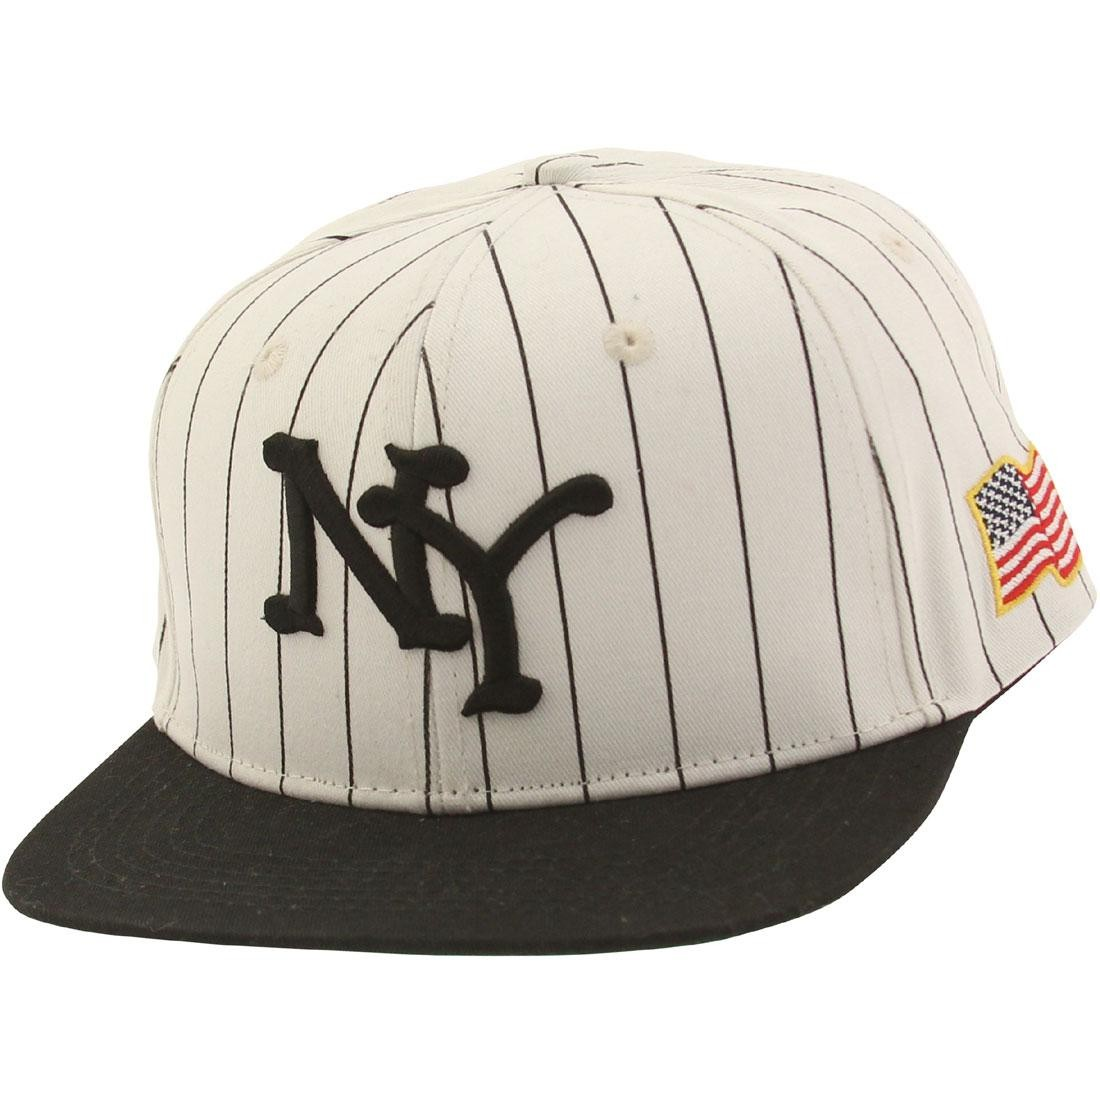 10 Deep Hometown Snapback Cap (white)